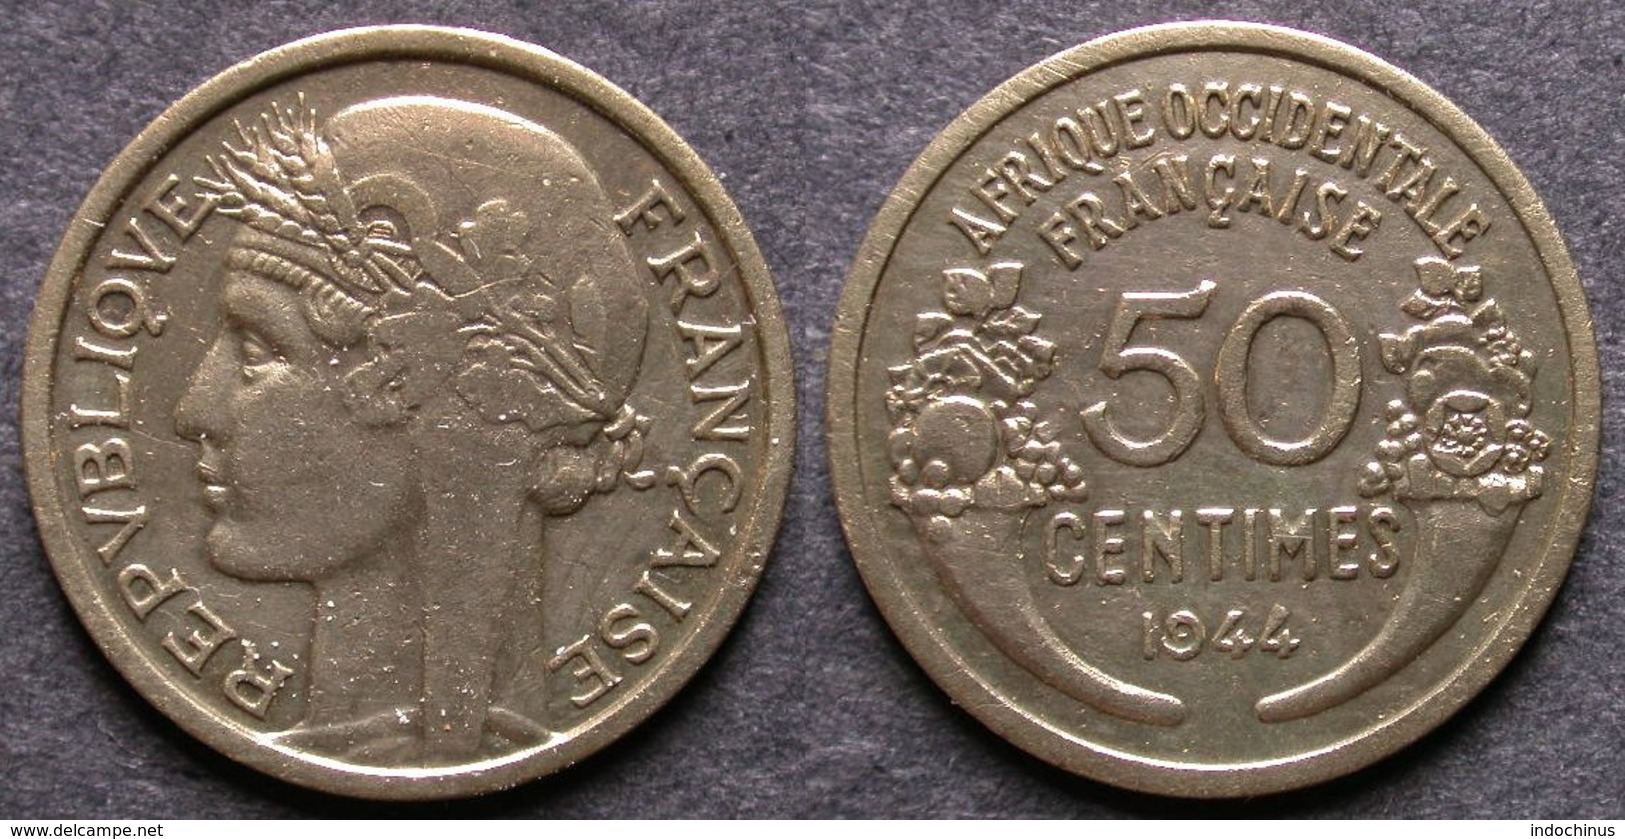 AFRIQUE OCCIDENTALE FRANCAISE   50 Centimes  1944  AOF   FRENCH WESTERN AFRICA   PORT OFFERT - Mauritania